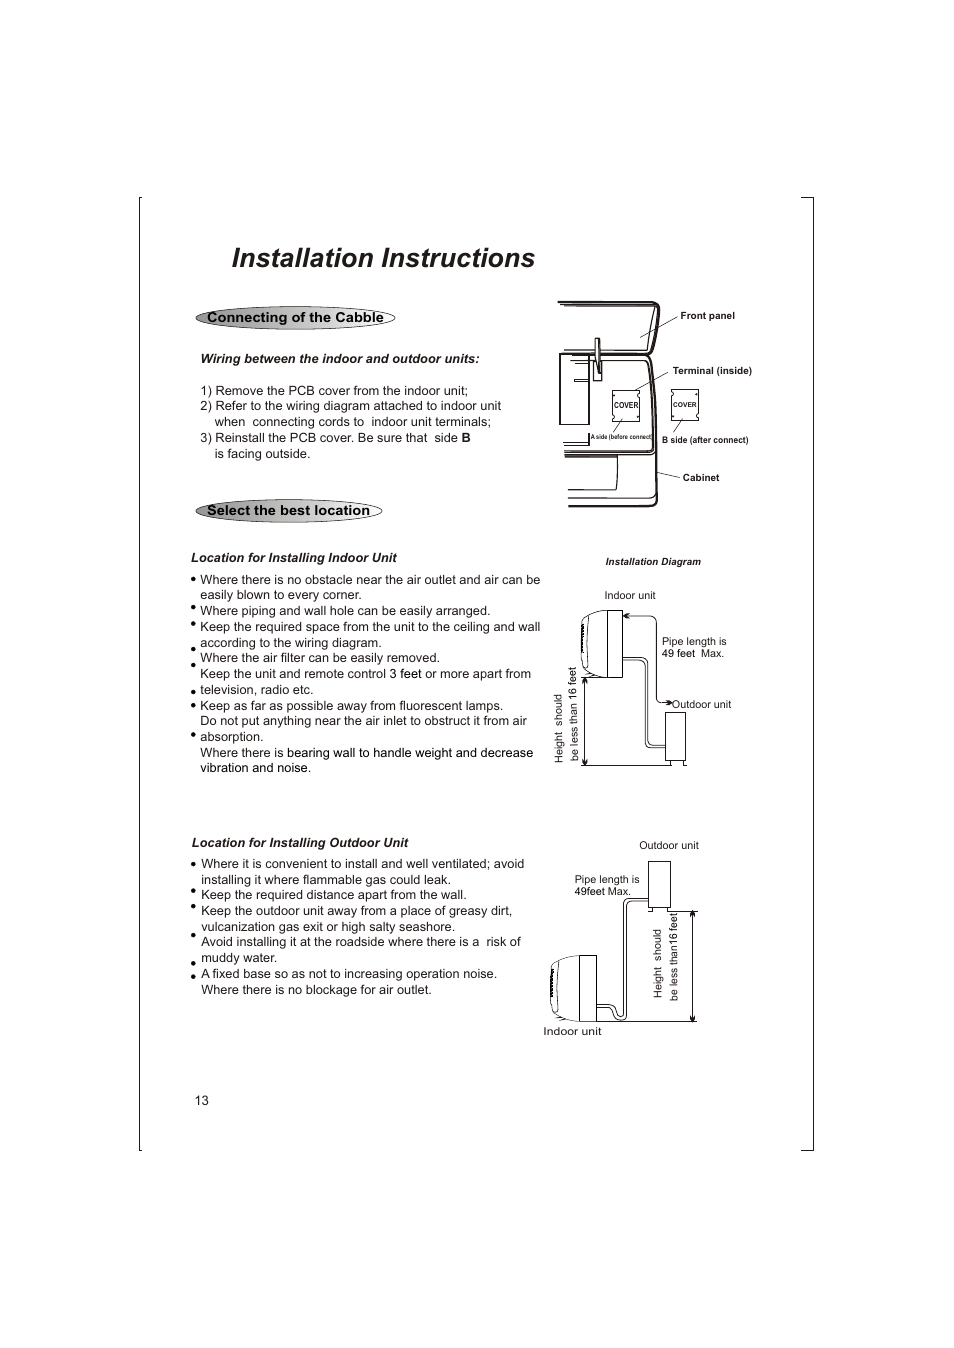 Т³гж 15, Installation instructions   Soleus Air KFTHP-12-ID User Manual    Page 15 / 26